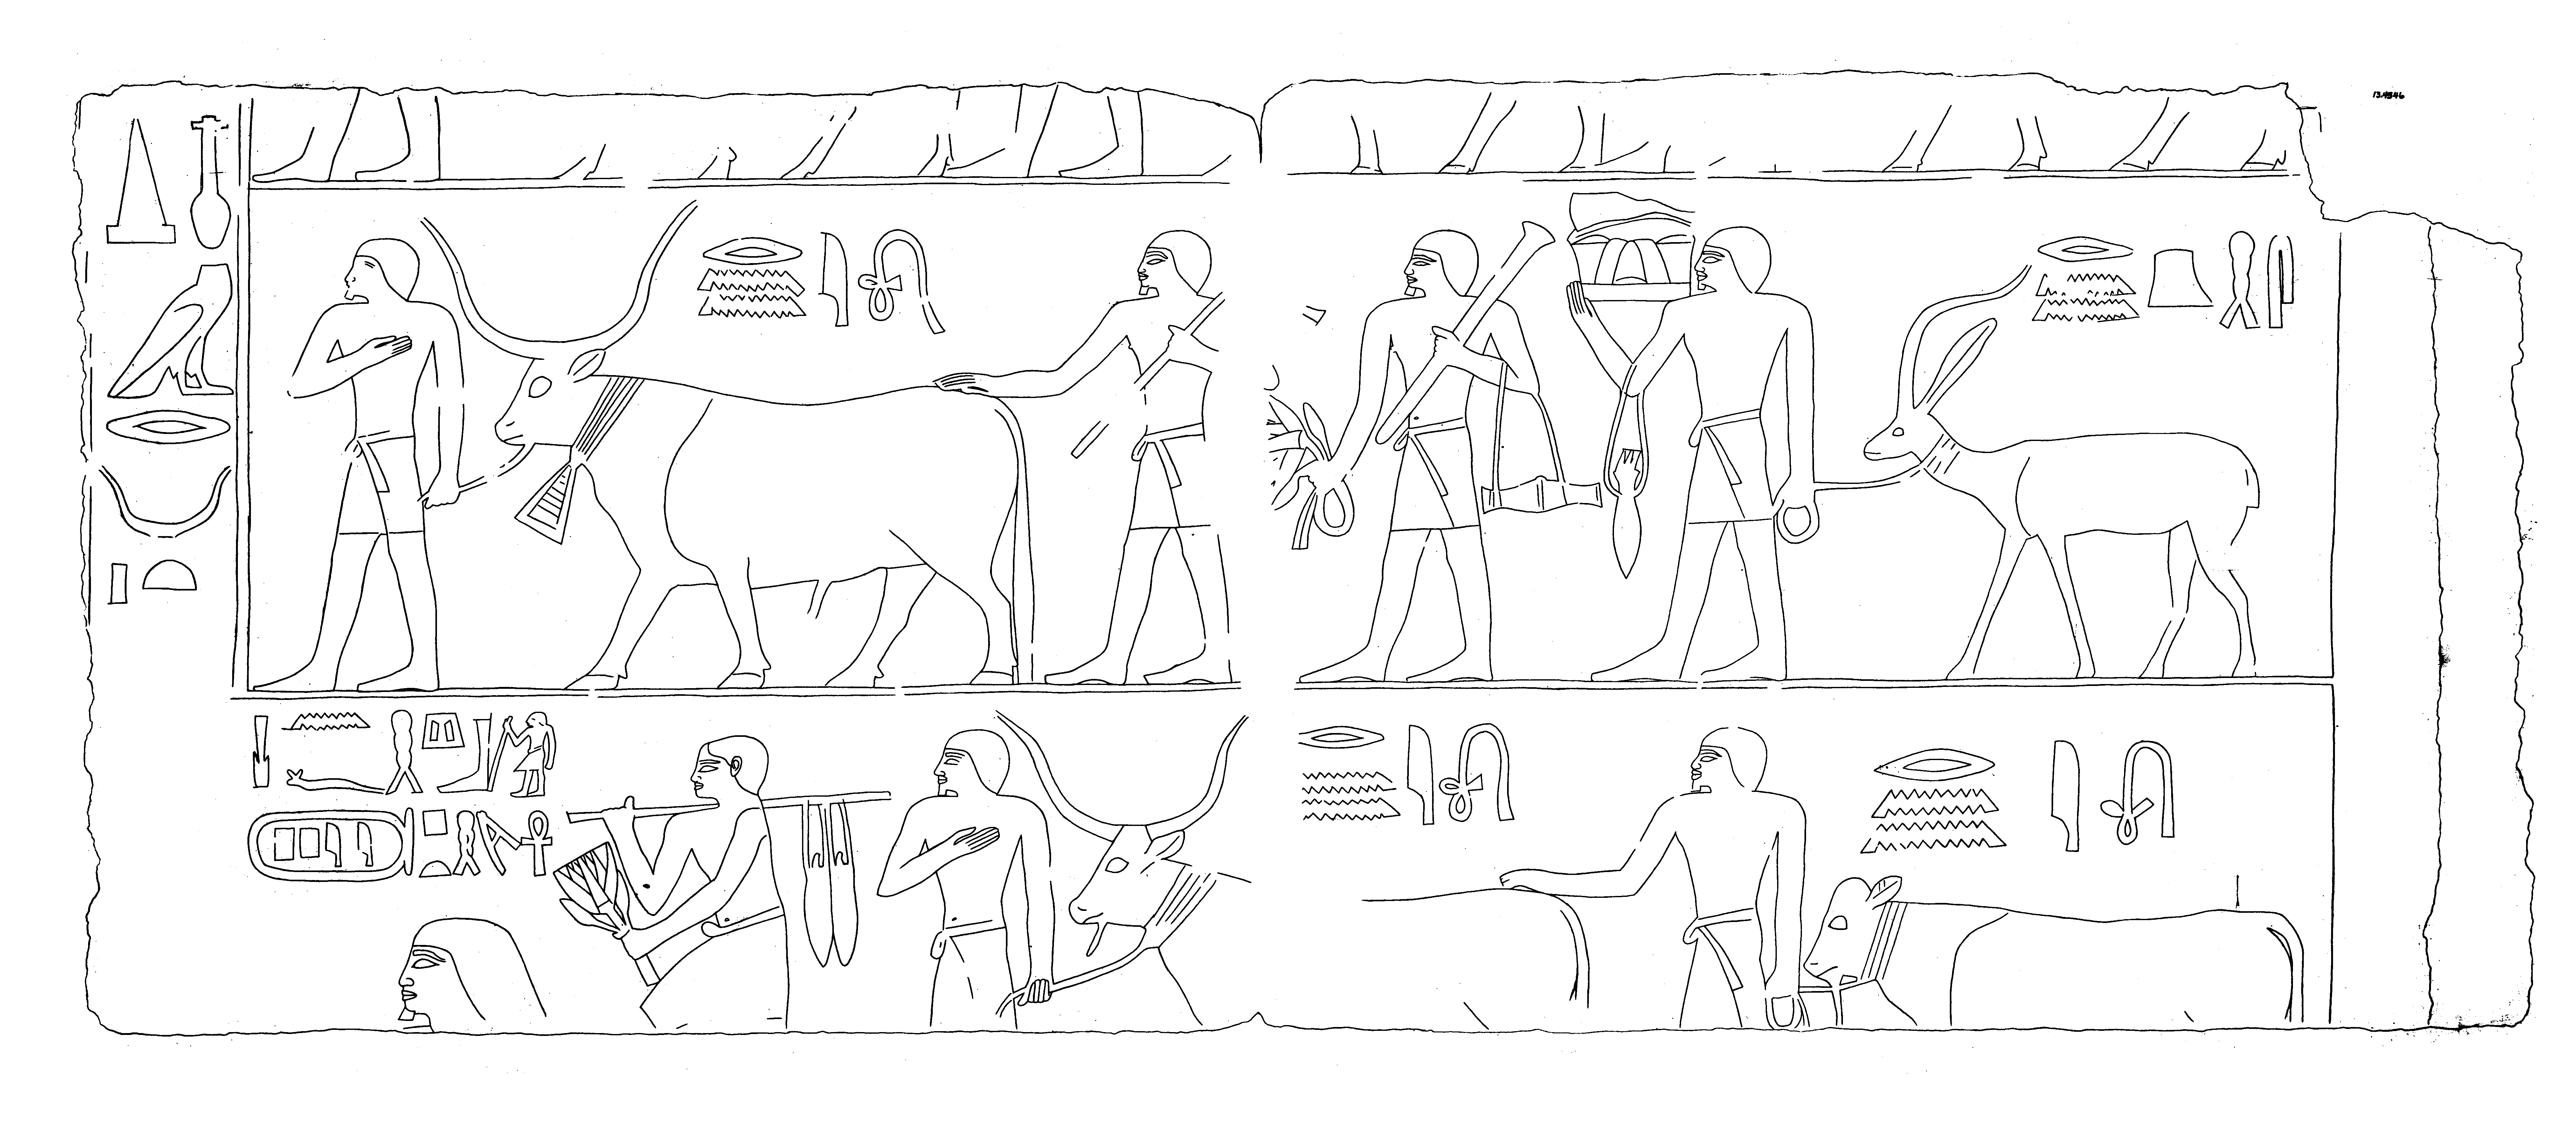 Drawings: G 2382 (originally G 2381): relief, procession scene